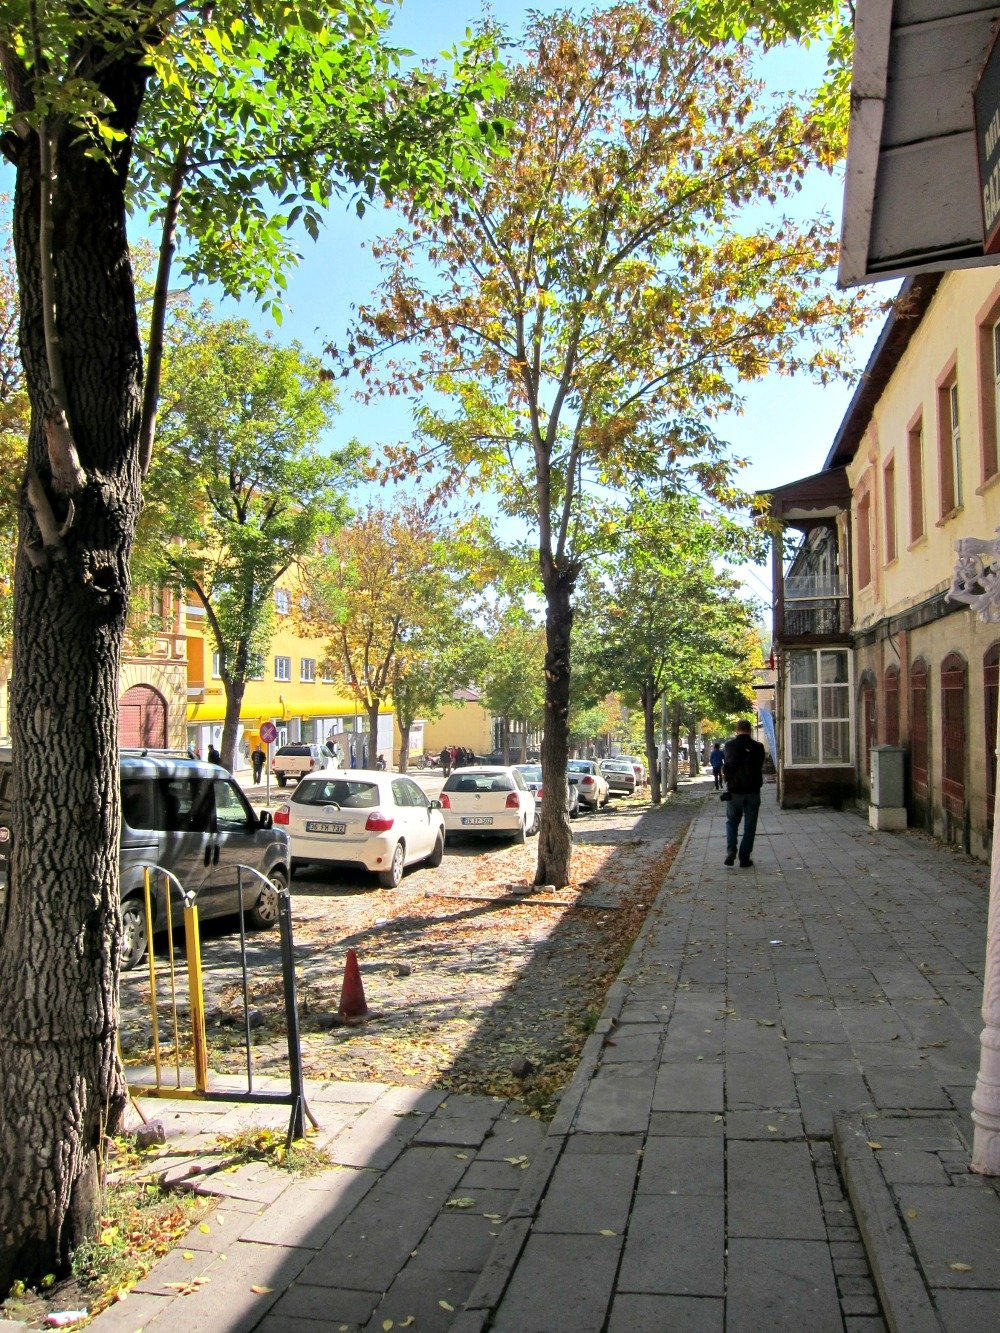 Kars Autumn Trees at the quiet end of town.